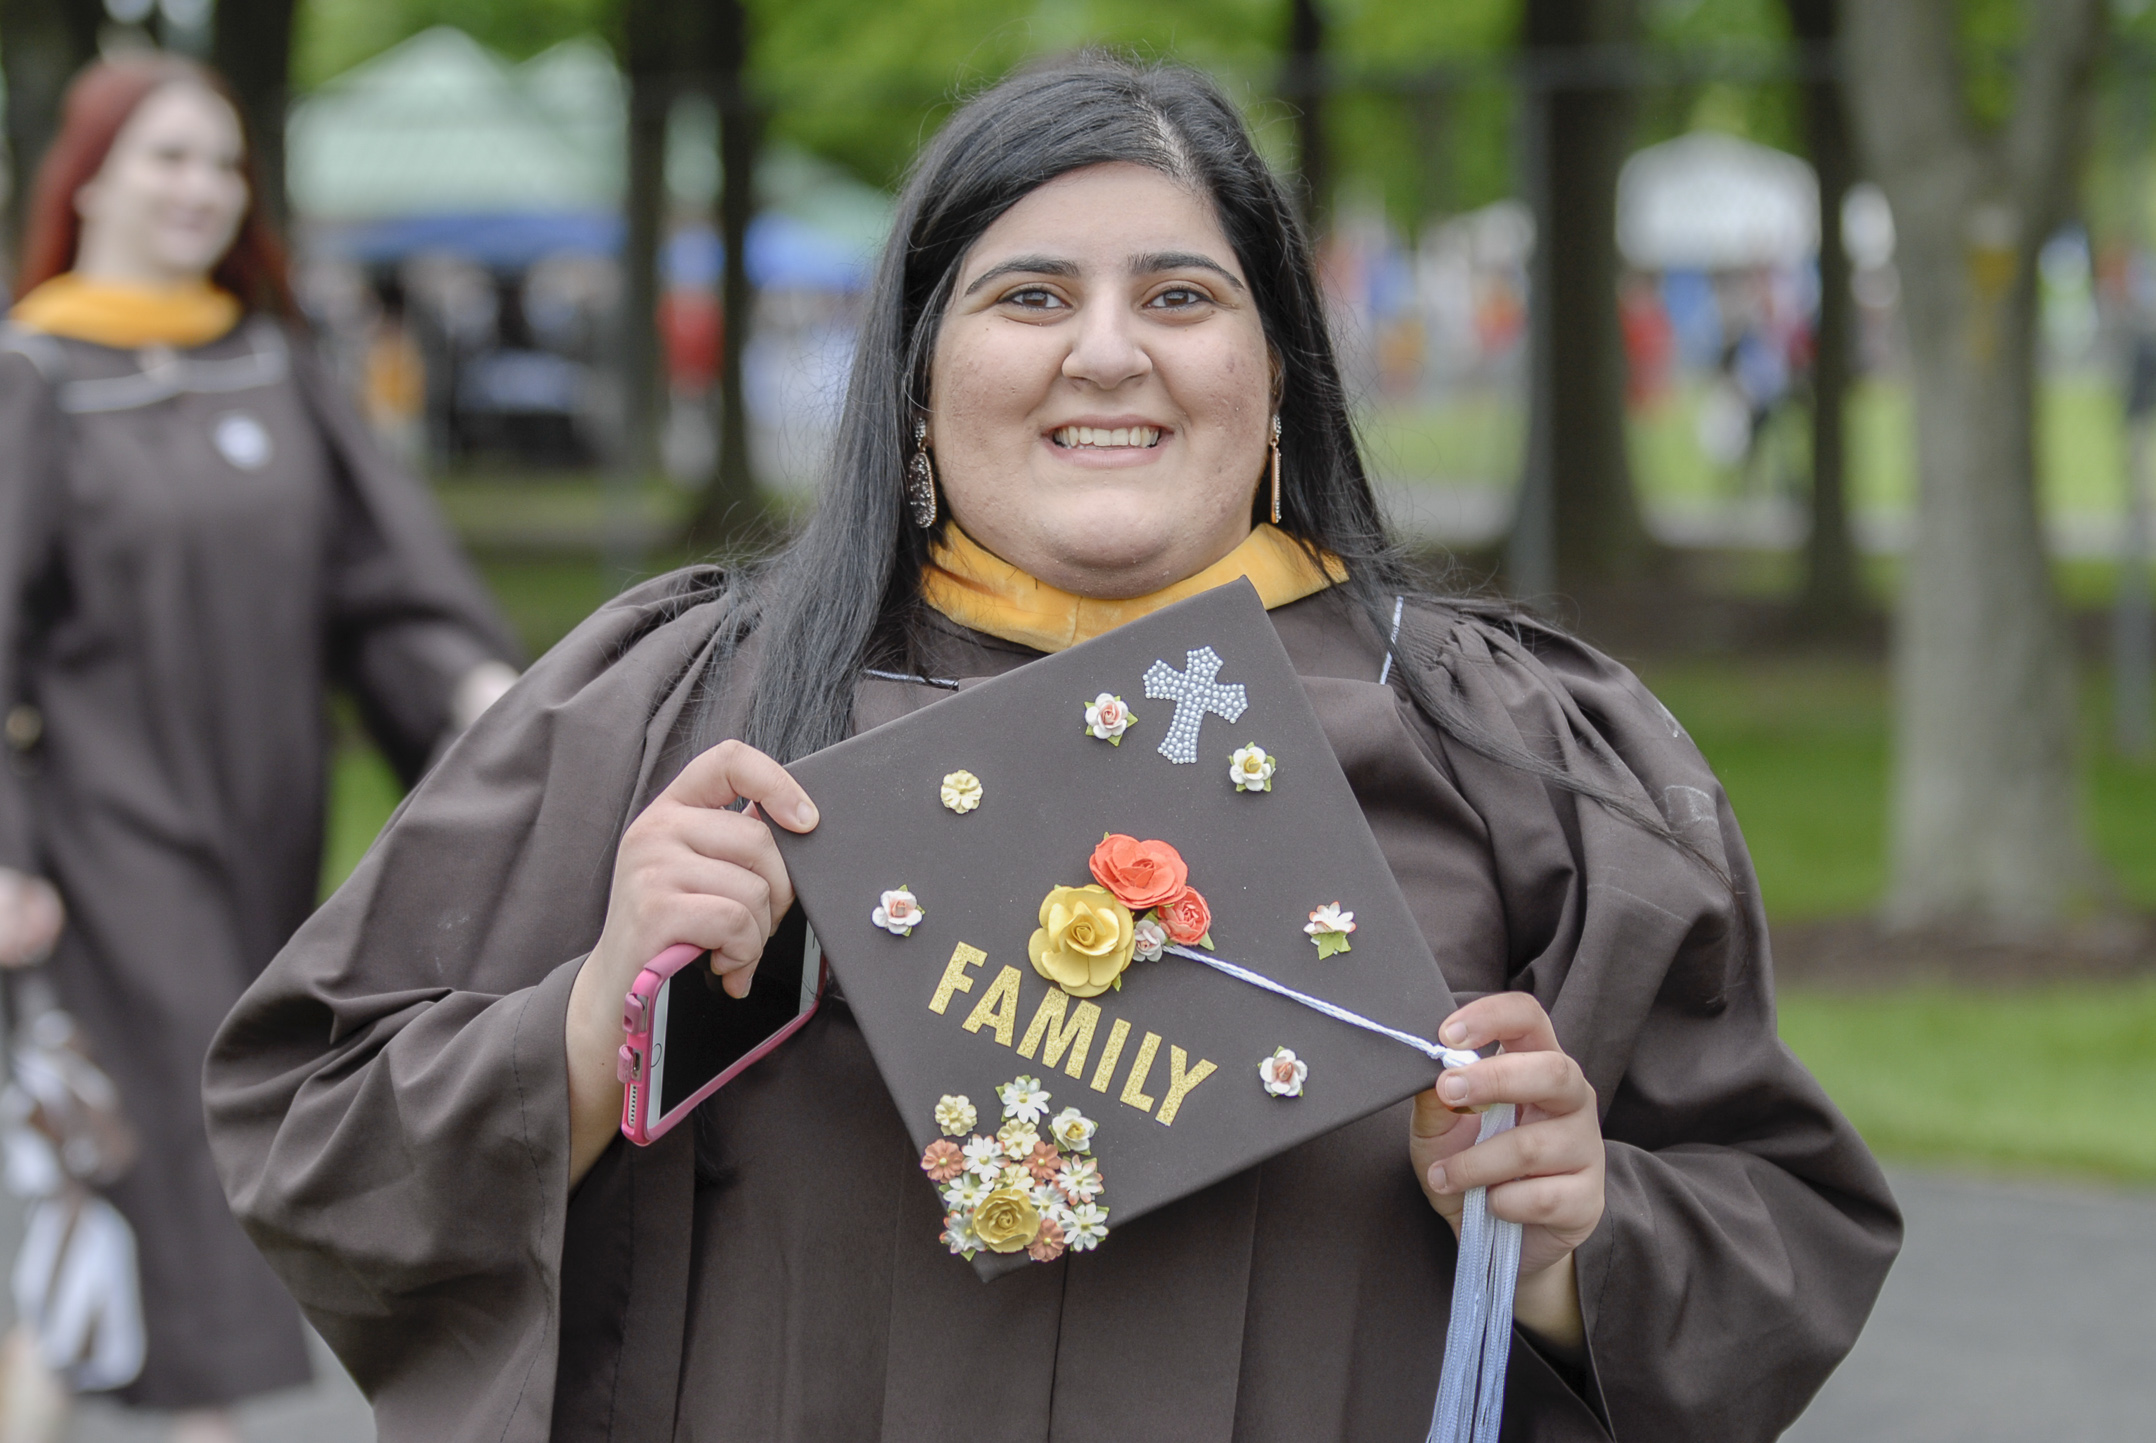 Reem Azar, '17, holds her graduation cap Monday, May 22, 2017, outside Goodman Stadium. Azar, a behavioral neuroscience graduate, decorated her cap to represent the importance of family in her life. (Roshan Giyanani/B&W Staff)